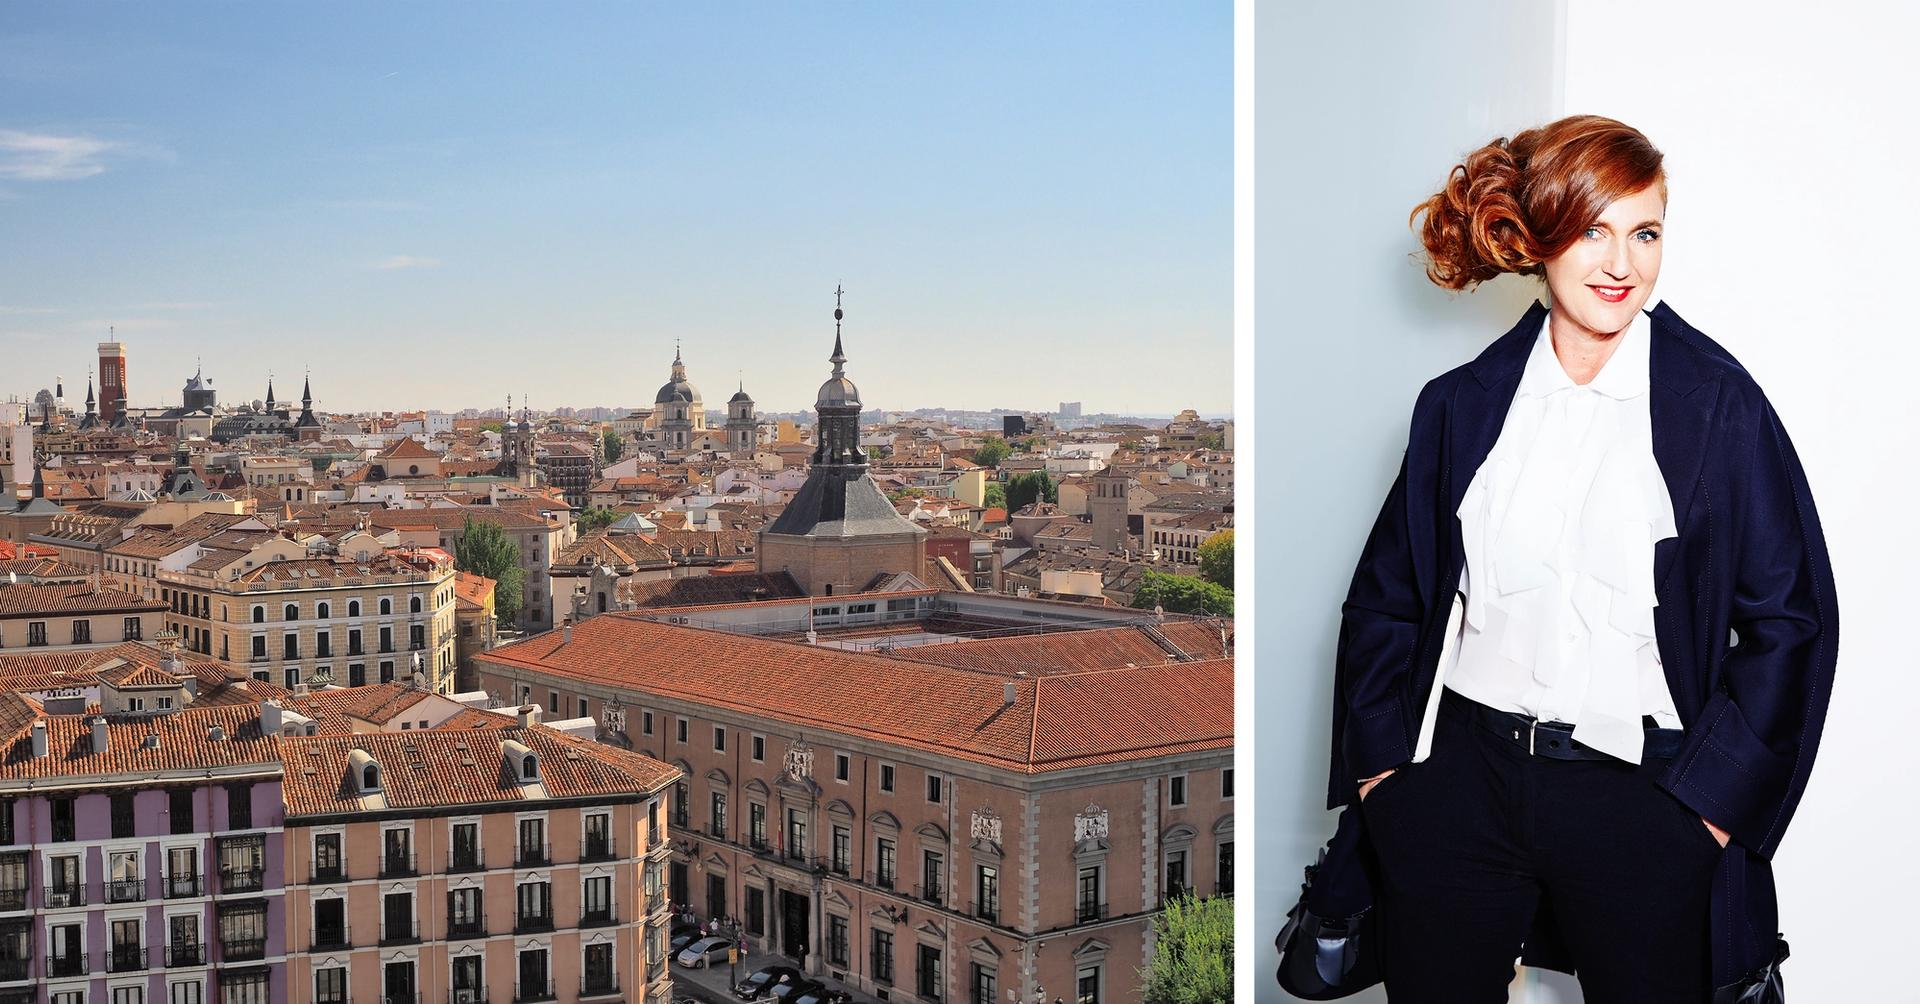 Since closing her exhibition space in Vienna, the Austrian collector and philanthropist Francesca Thyssen-Bornemisza has turned her focus to Madrid Left: Madrid cityscape (photo: Dmitry Dzhus); right: Francesca Thyssen-Bornemisza (photo: Irina Gavrich, 2014 © Francesca Thyssen-Bornemisza, 2013)